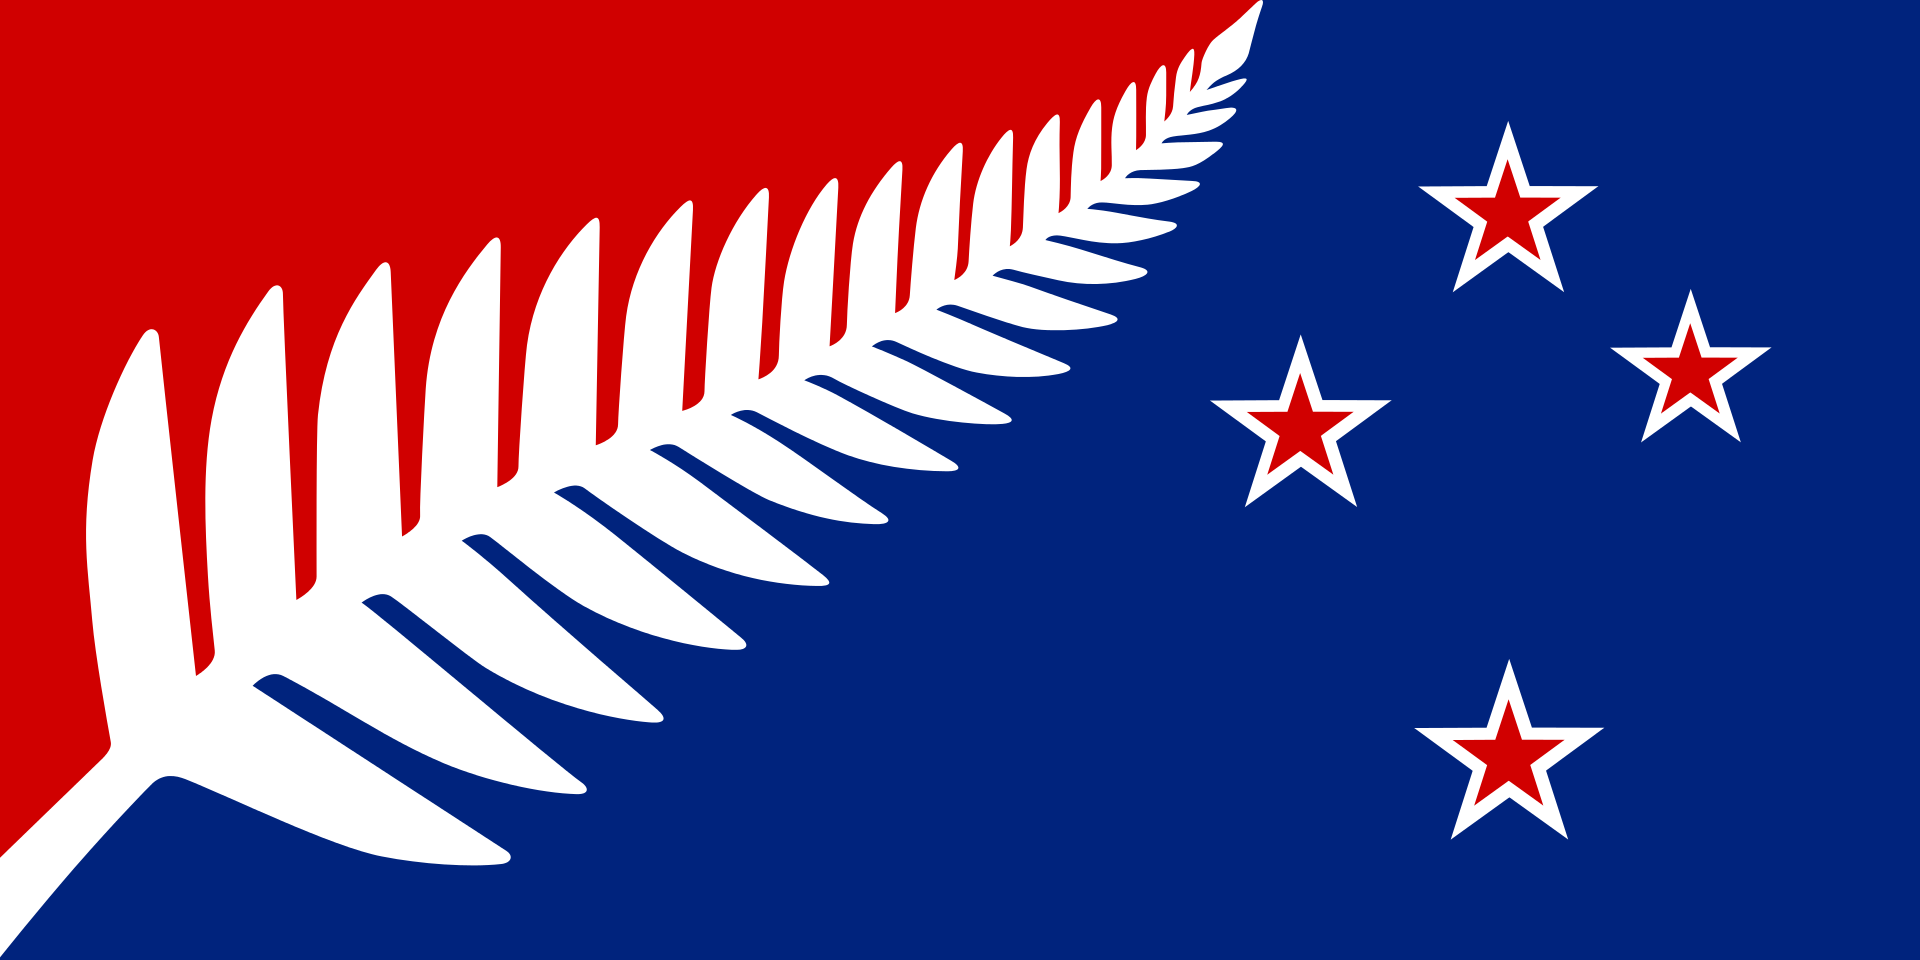 Nz Flag Design Kyle Lockwood Silver Fern Red White And Blue In 2020 New Zealand Flag New Zealand Maori Art